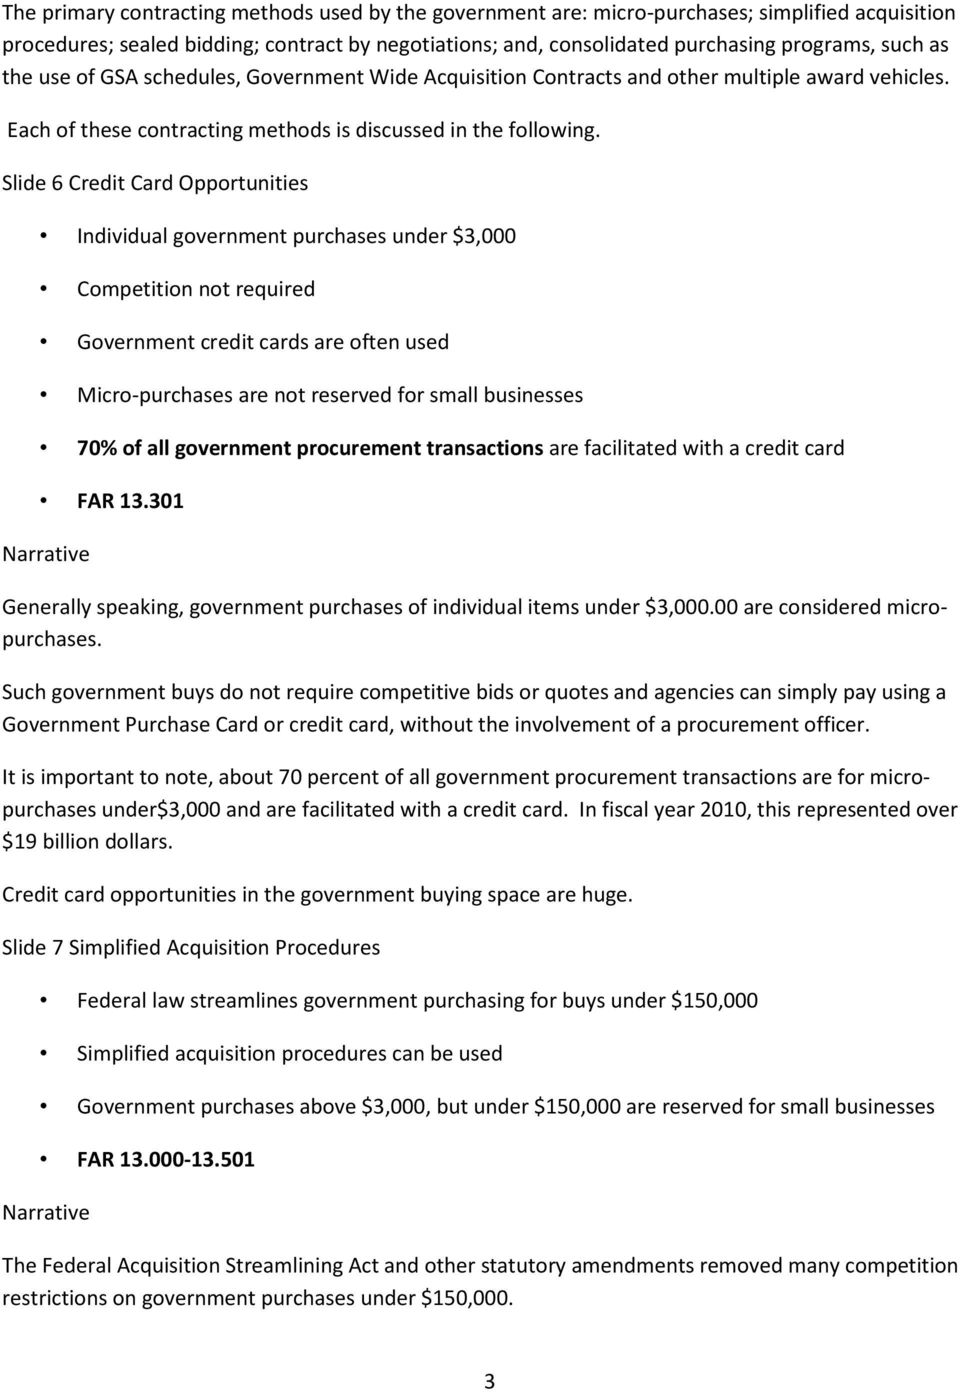 Slide 6 Credit Card Opportunities Individual government purchases under $3,000 Competition not required Government credit cards are often used Micro-purchases are not reserved for small businesses